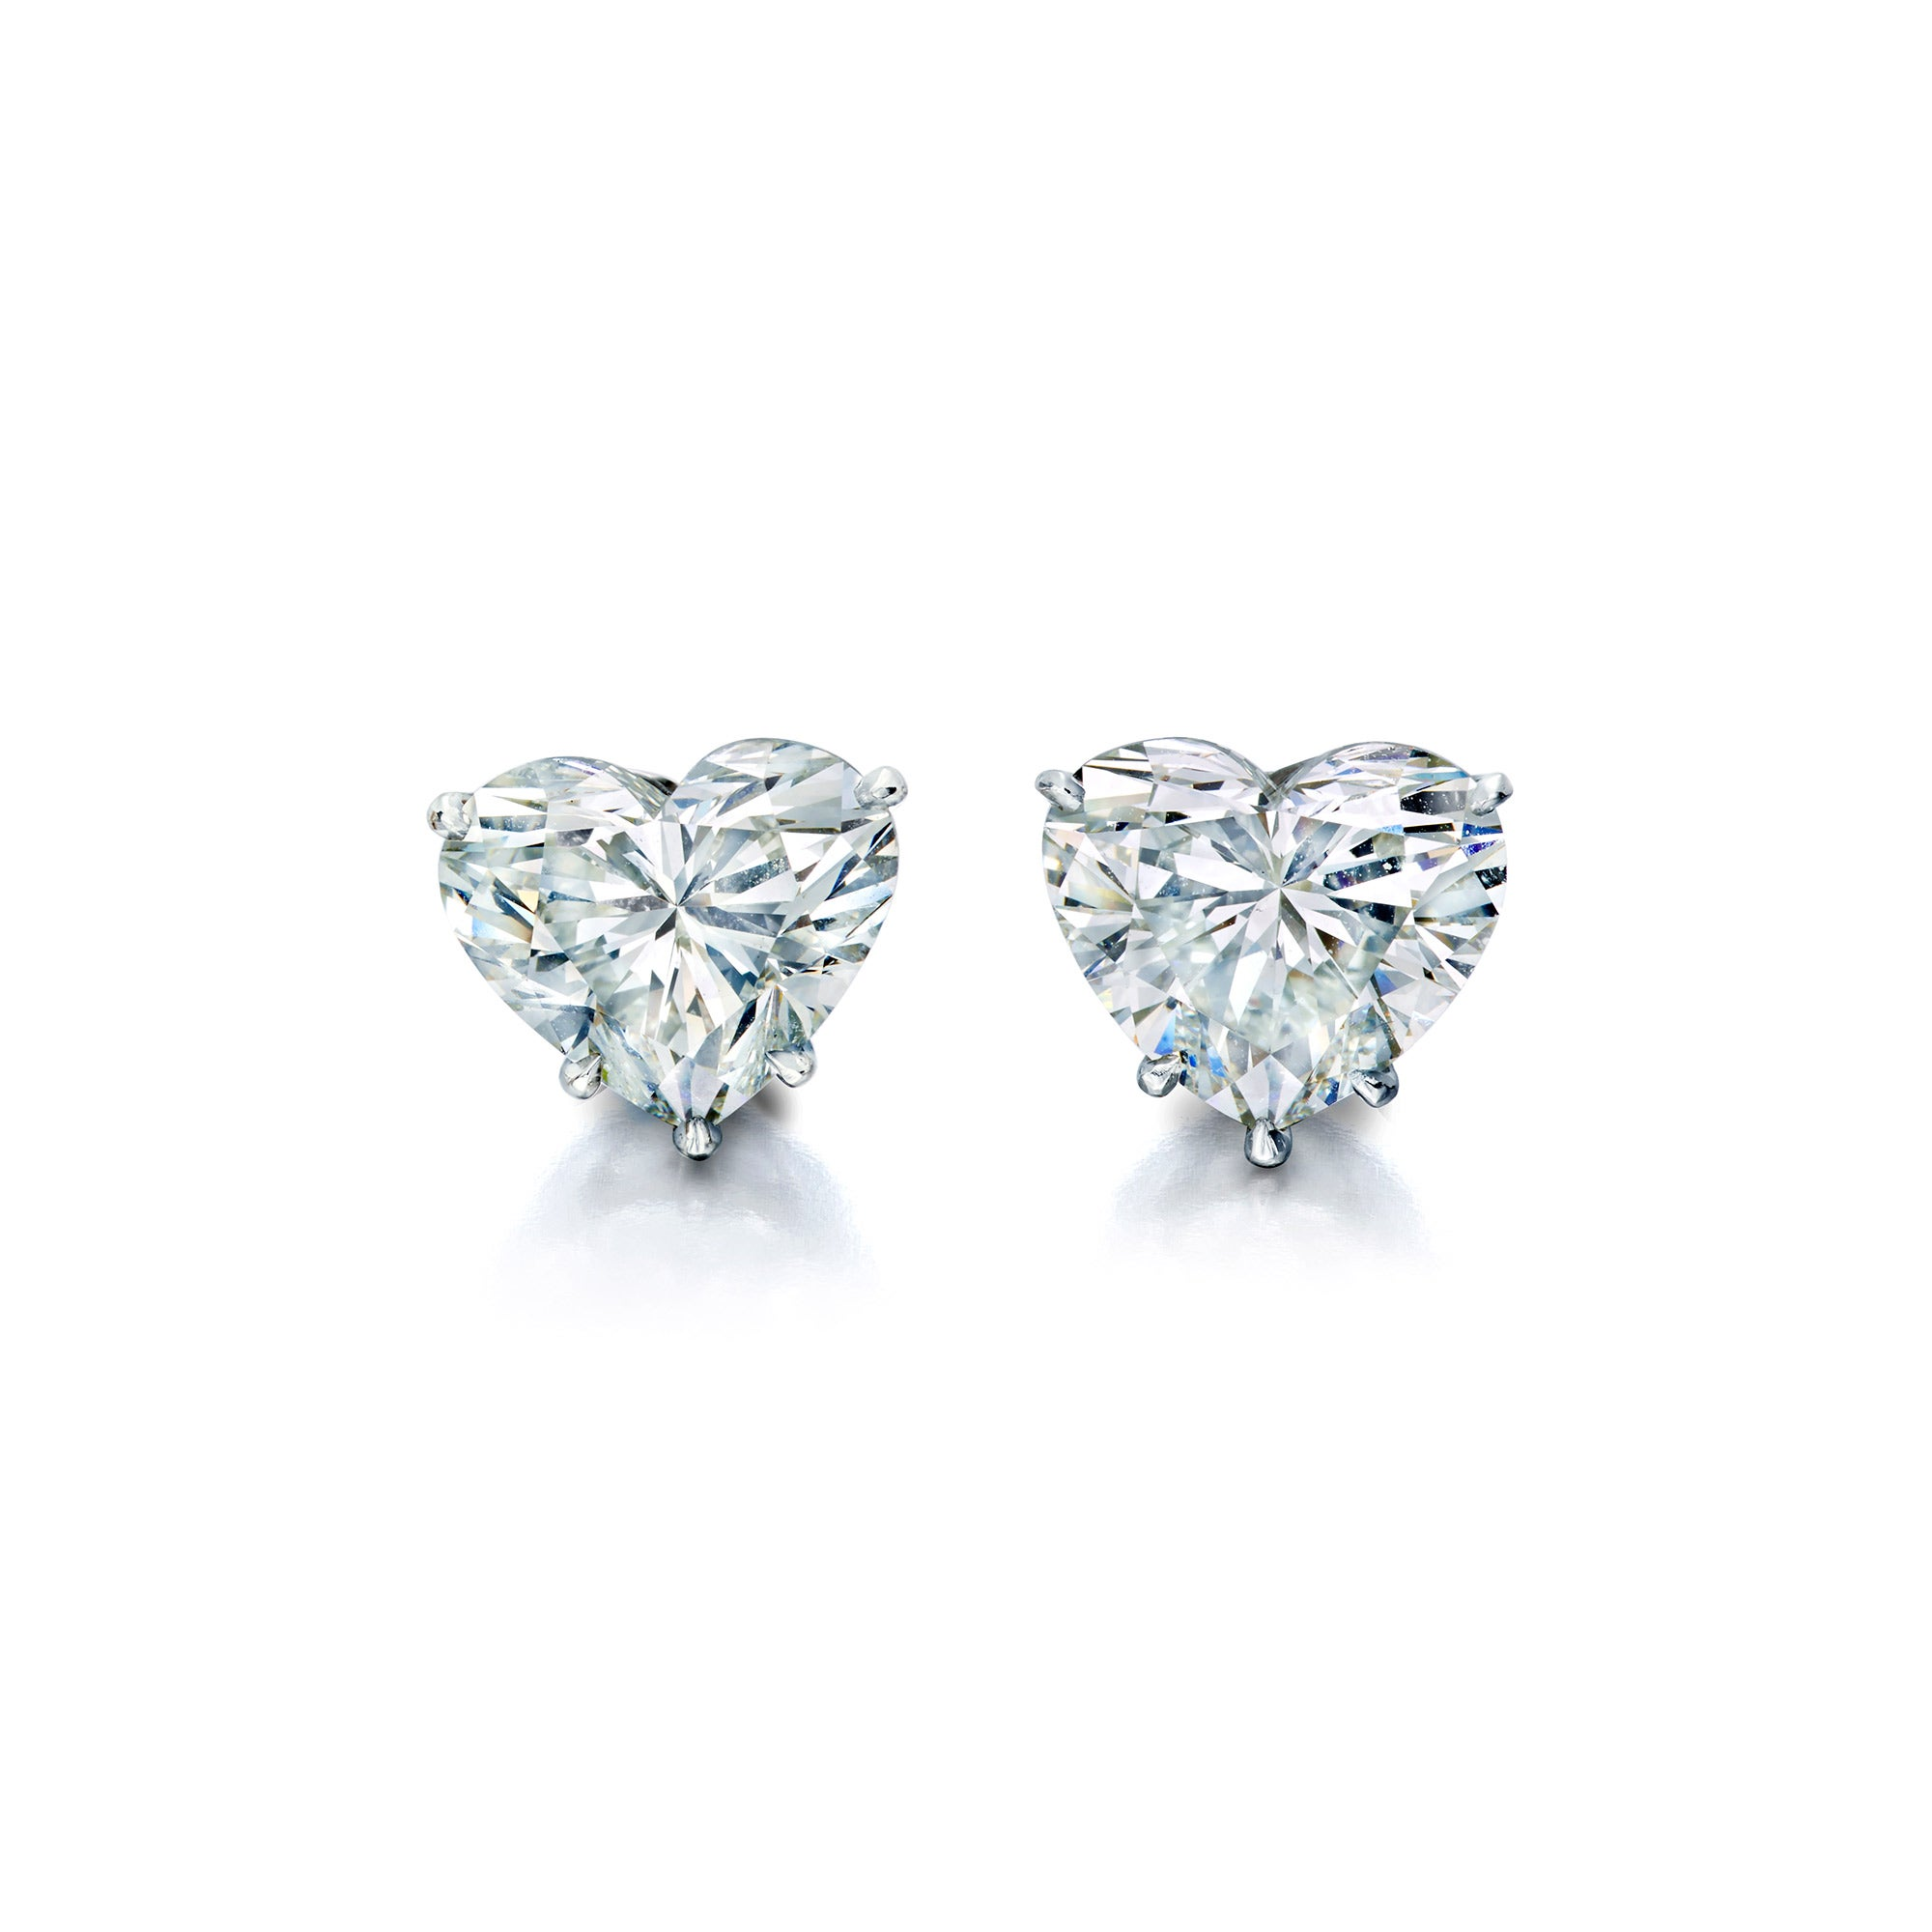 Lauren Addison Heart-Shaped Diamond Stud Earrings